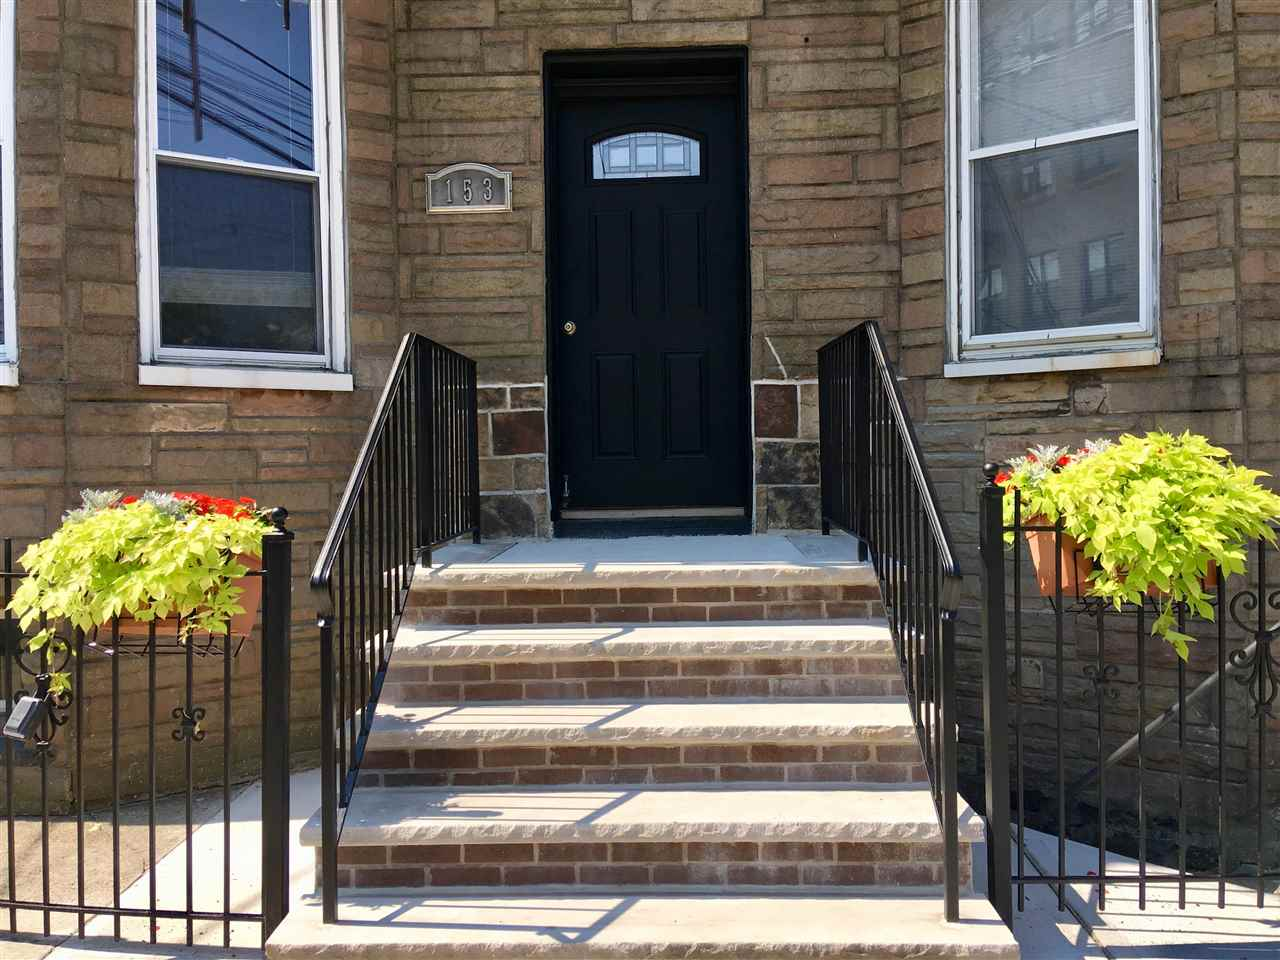 153 LINCOLN ST 1R, JC, Heights, NJ 07307